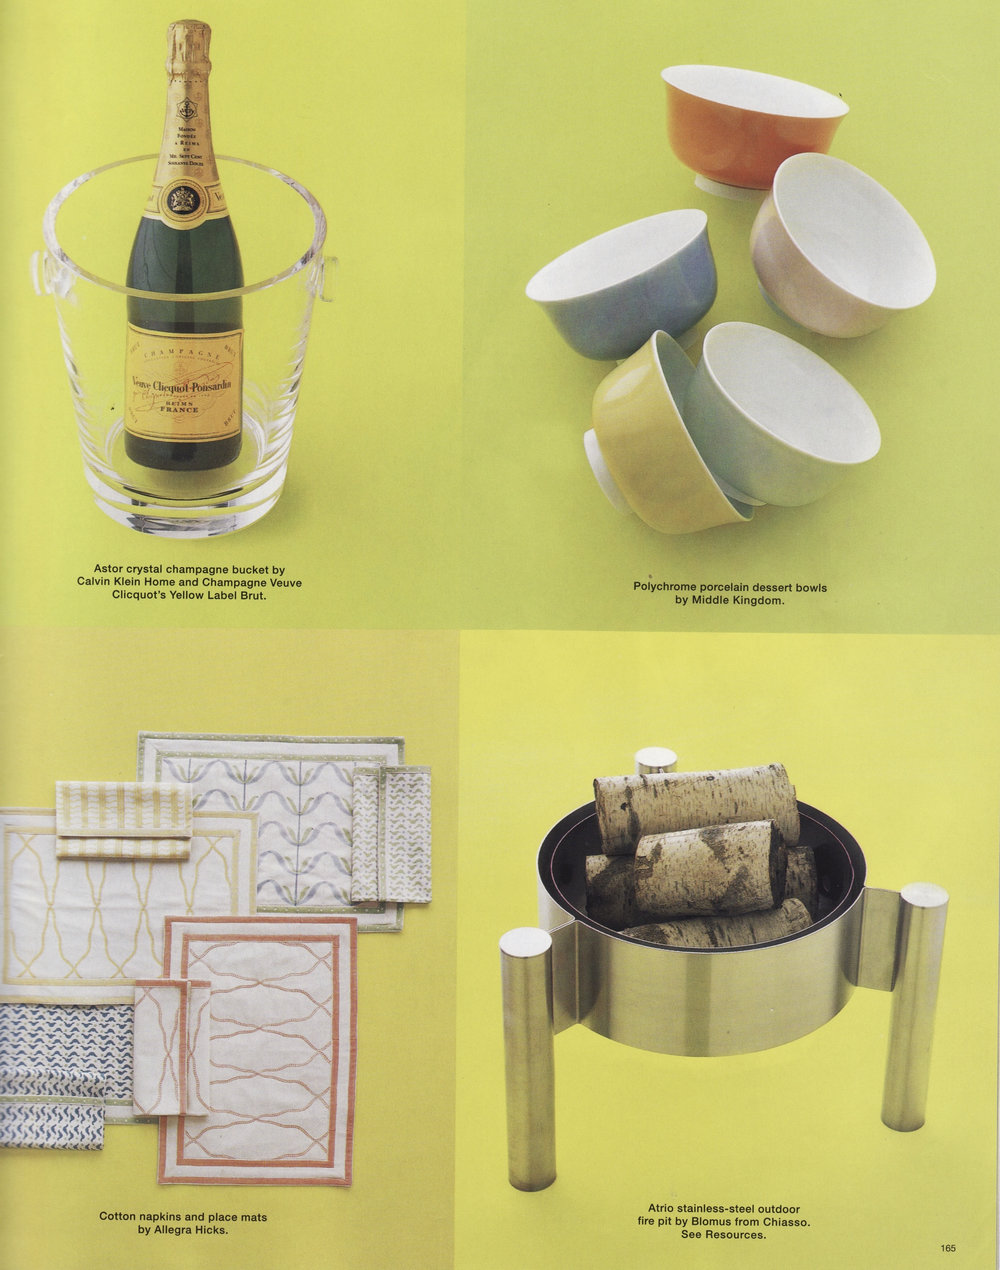 elle decor aug 2004.jpg